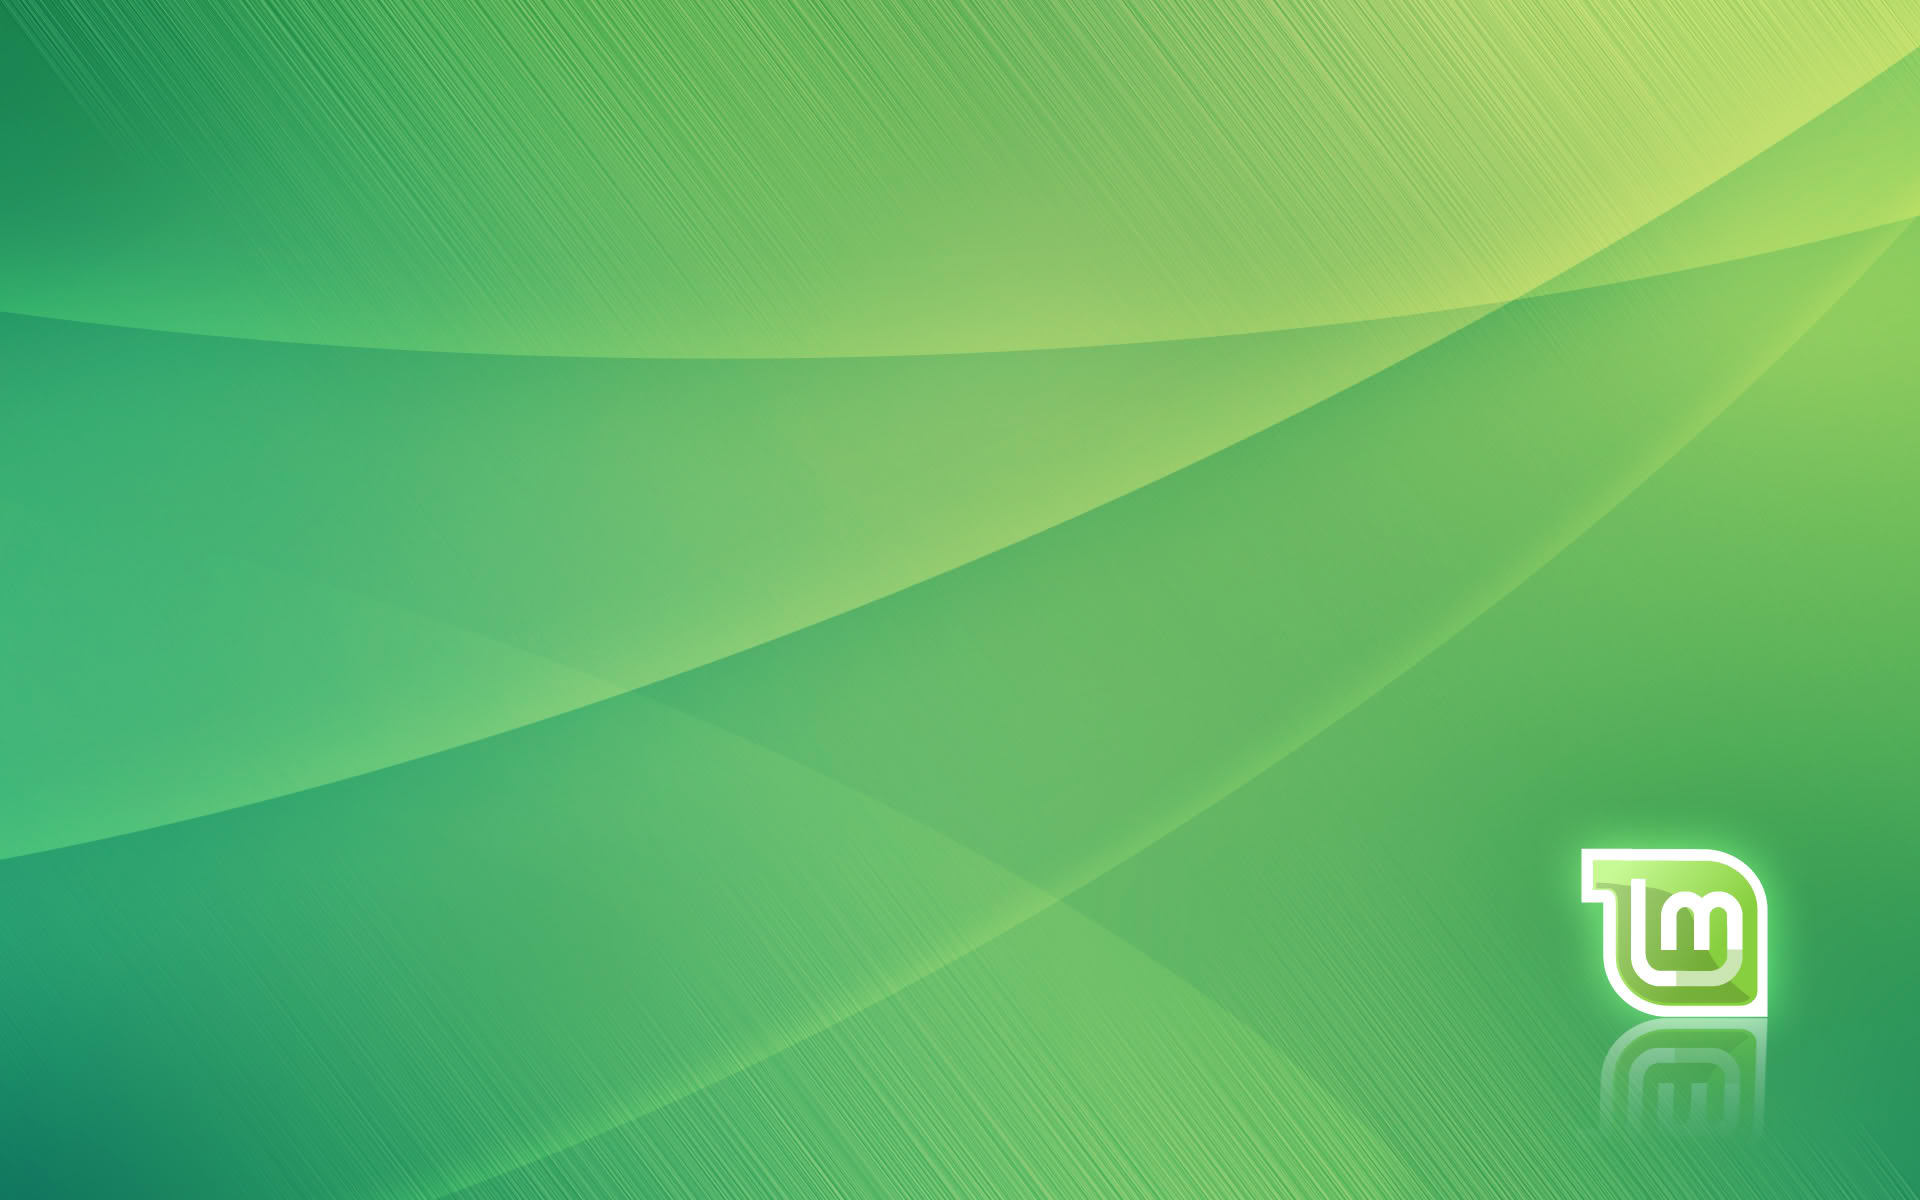 awesome linux mint wallpaper 45417